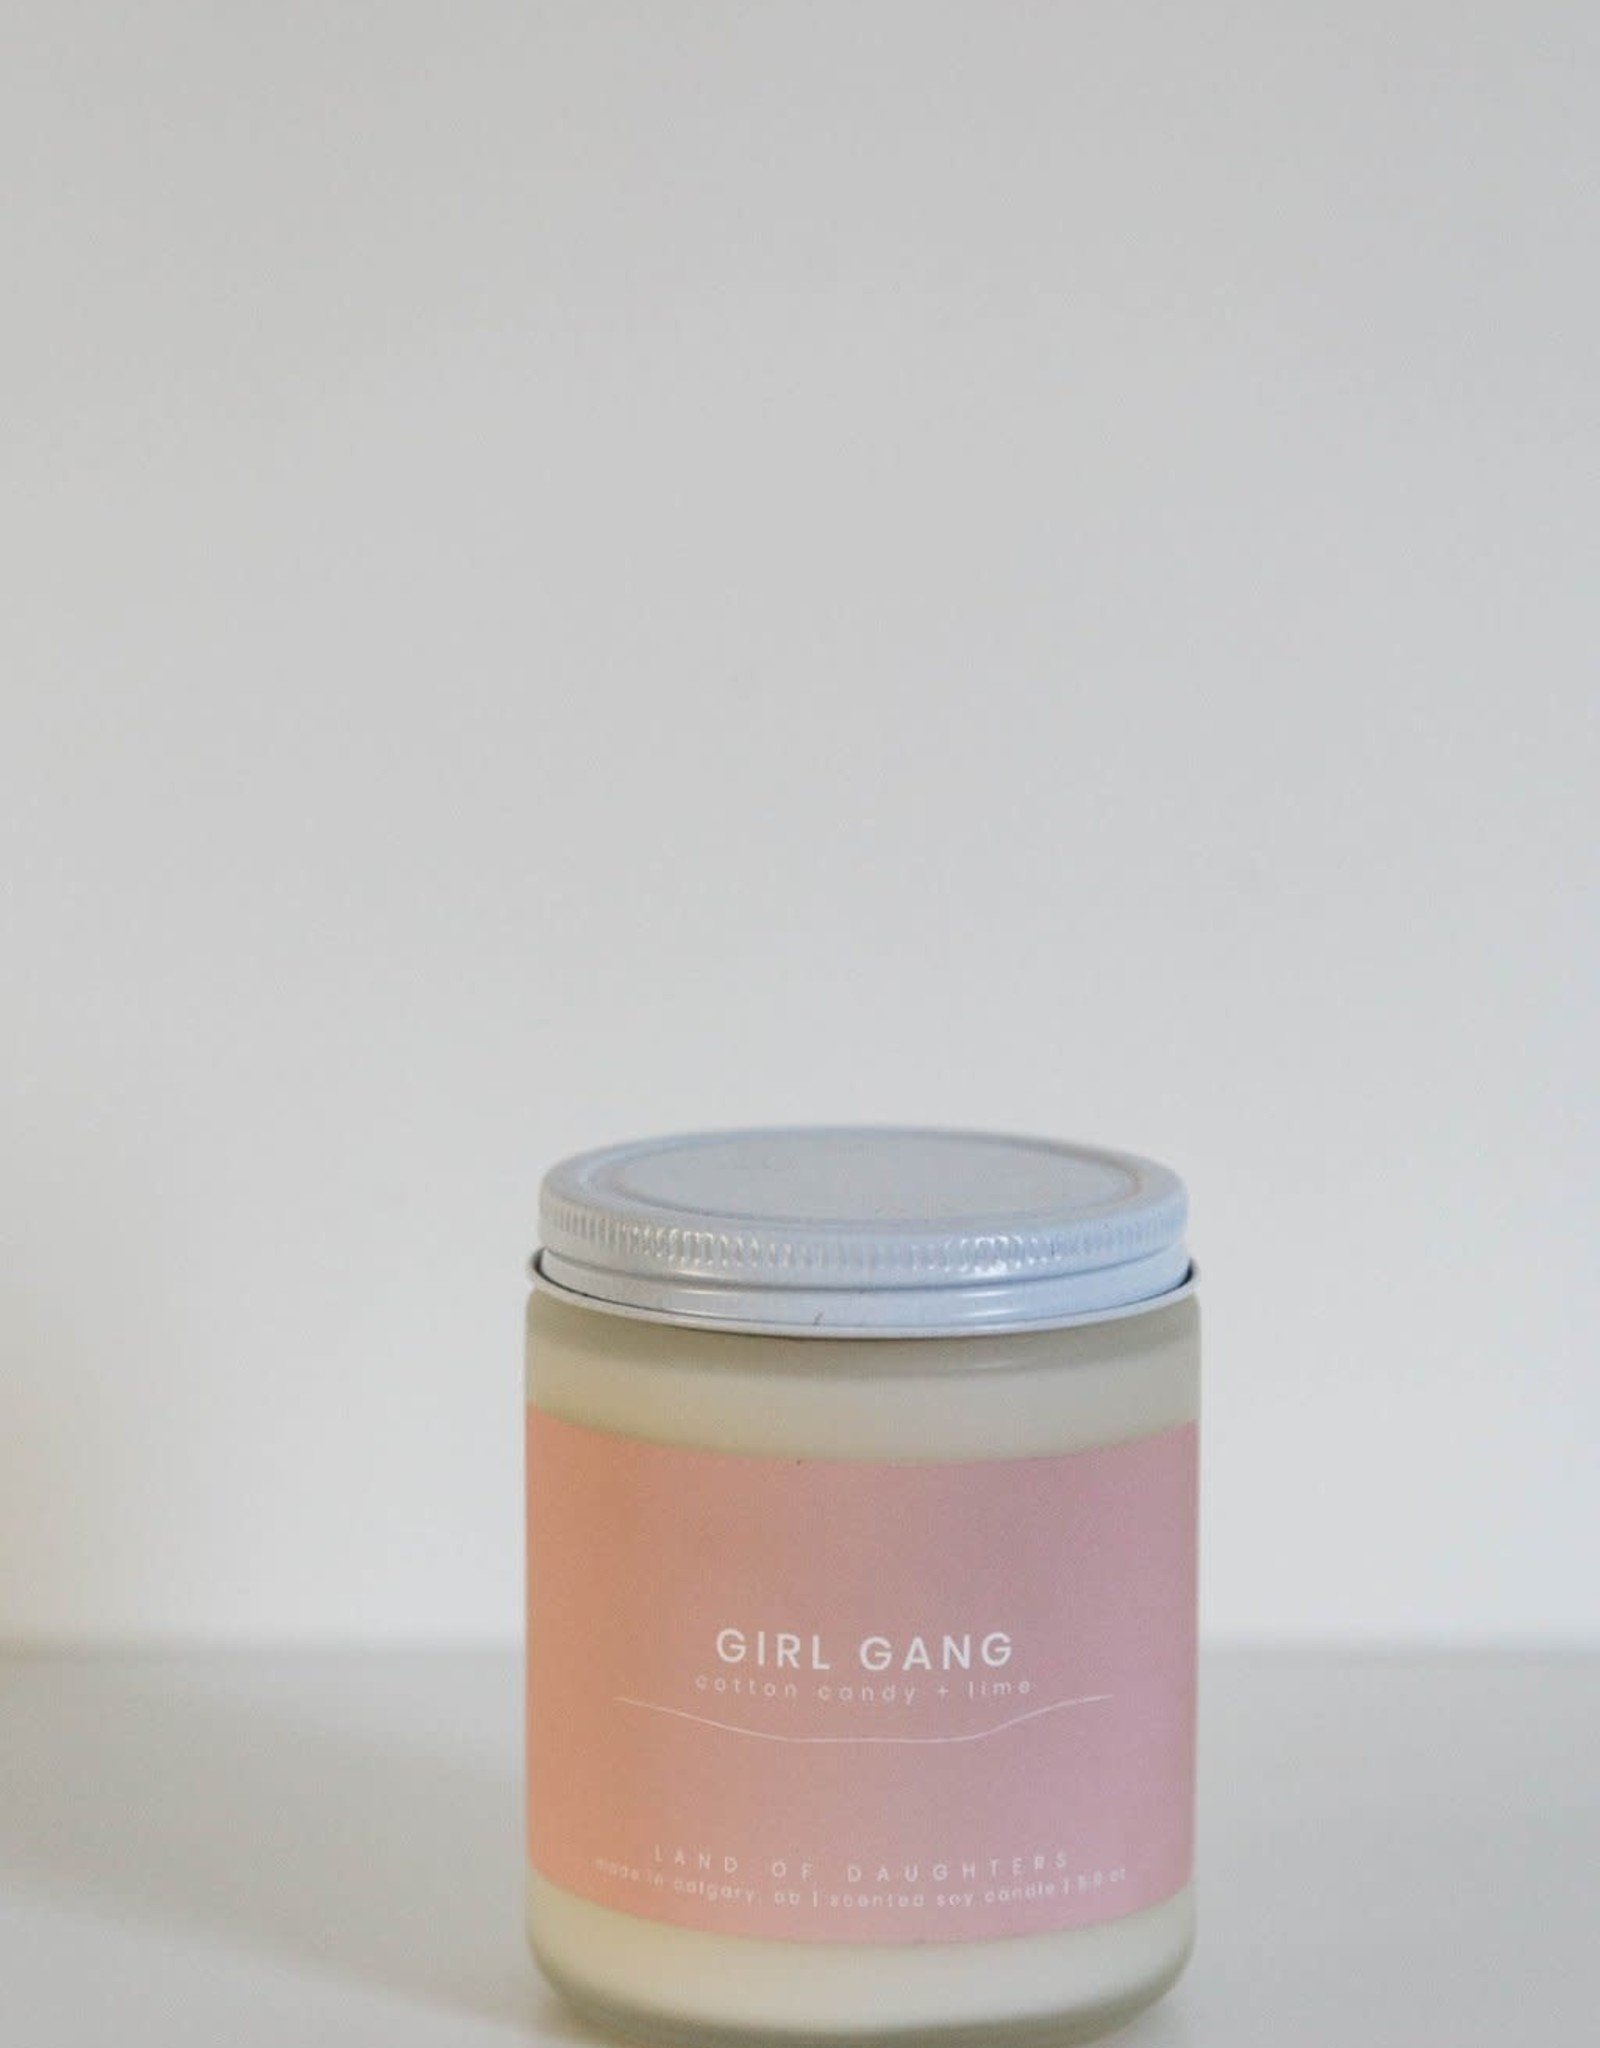 LAND of DAUGHTERS Girl Gang CANDLE